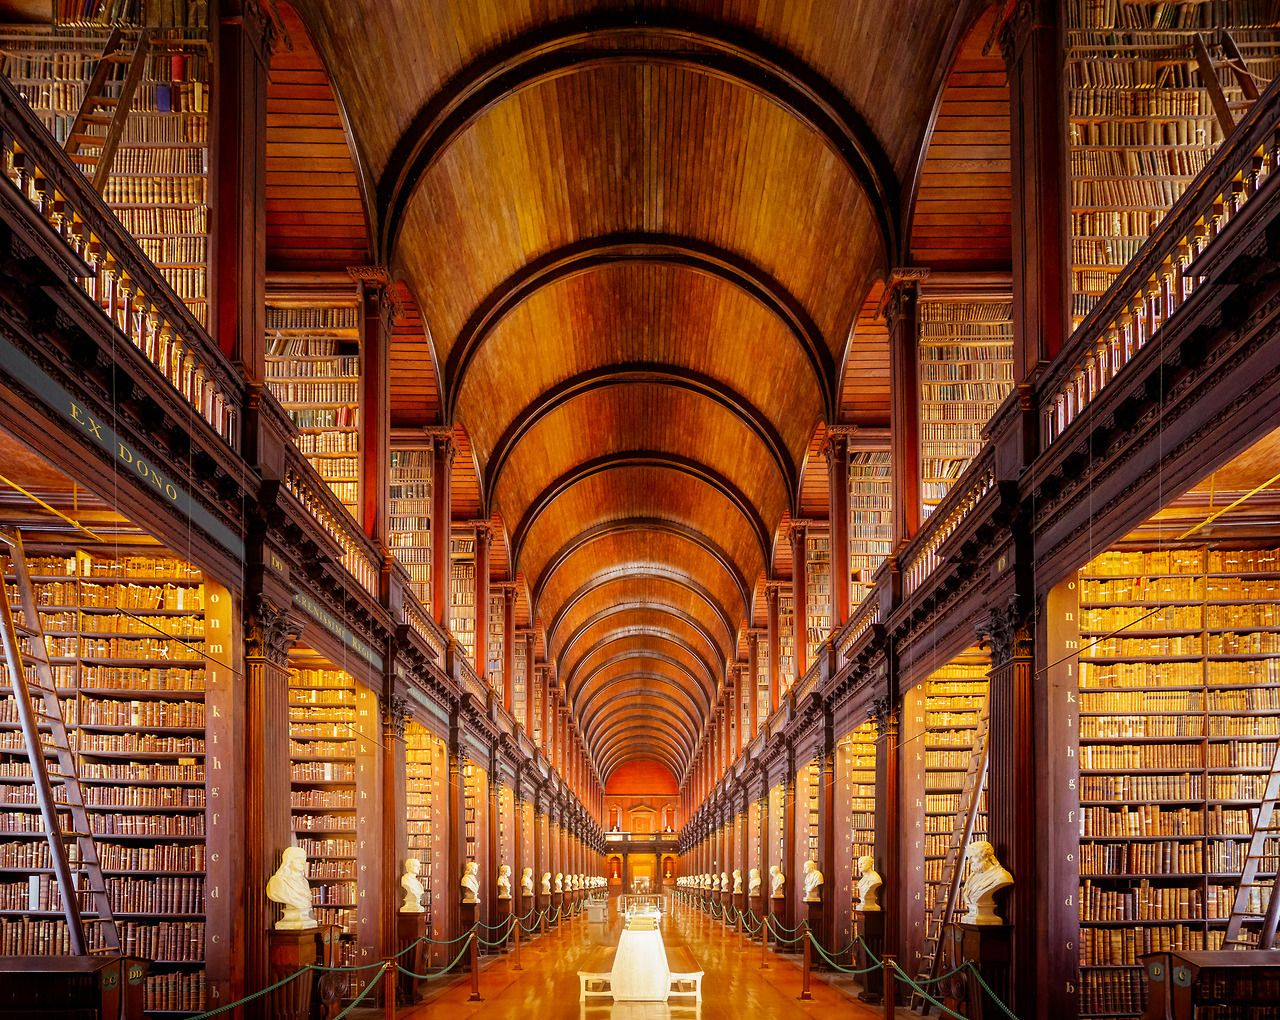 The Long Room on the campus of Trinity College, Dublin feels like stepping back into the 17th century. [2048x1632] [OC]